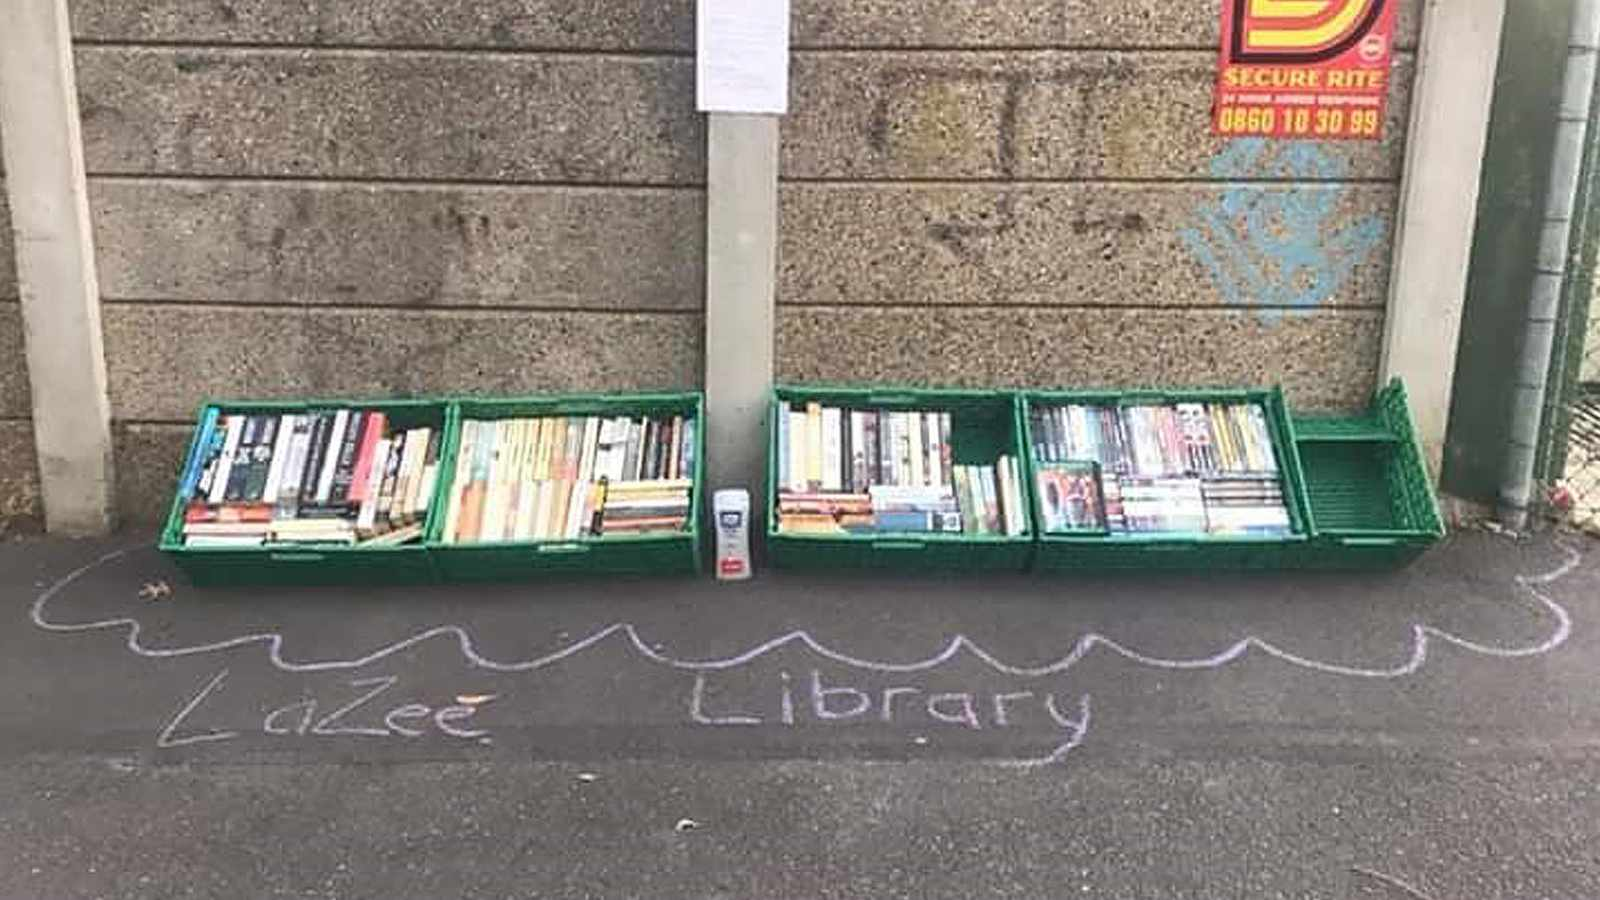 WATCH: Couple starts pop-up street library outside their home